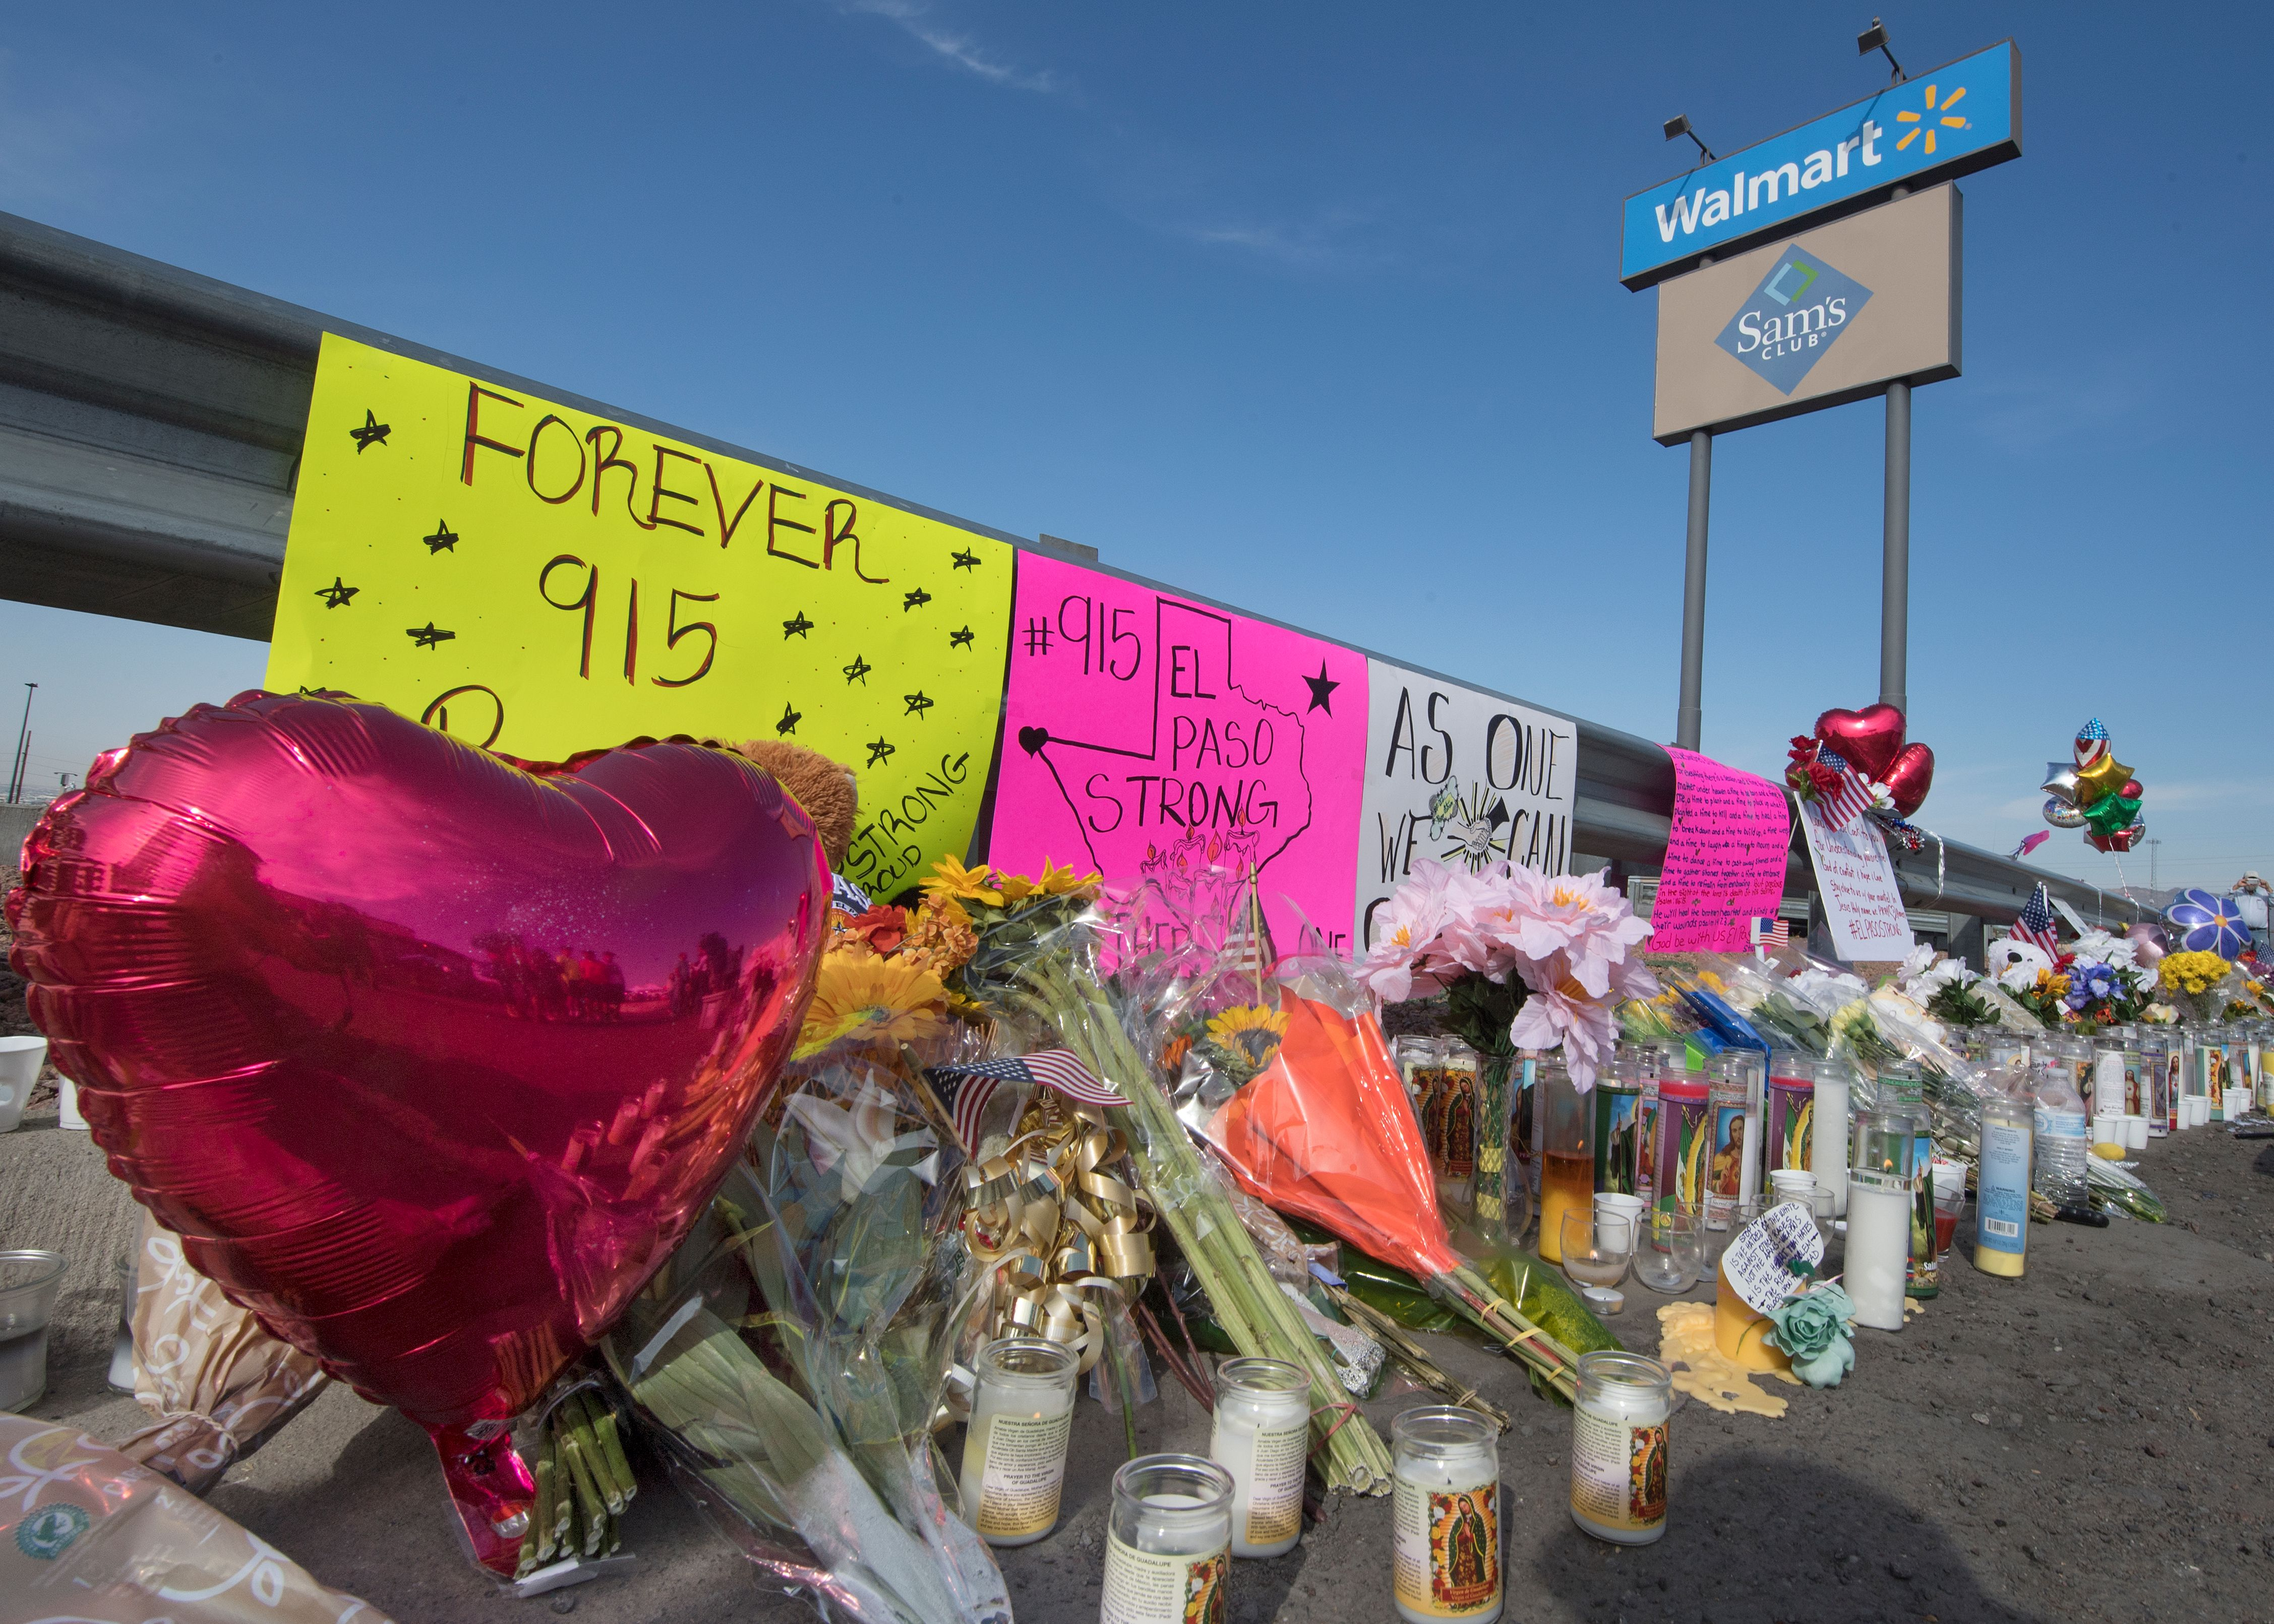 The mass shootings in El Paso, Texas, and Dayton, Ohio